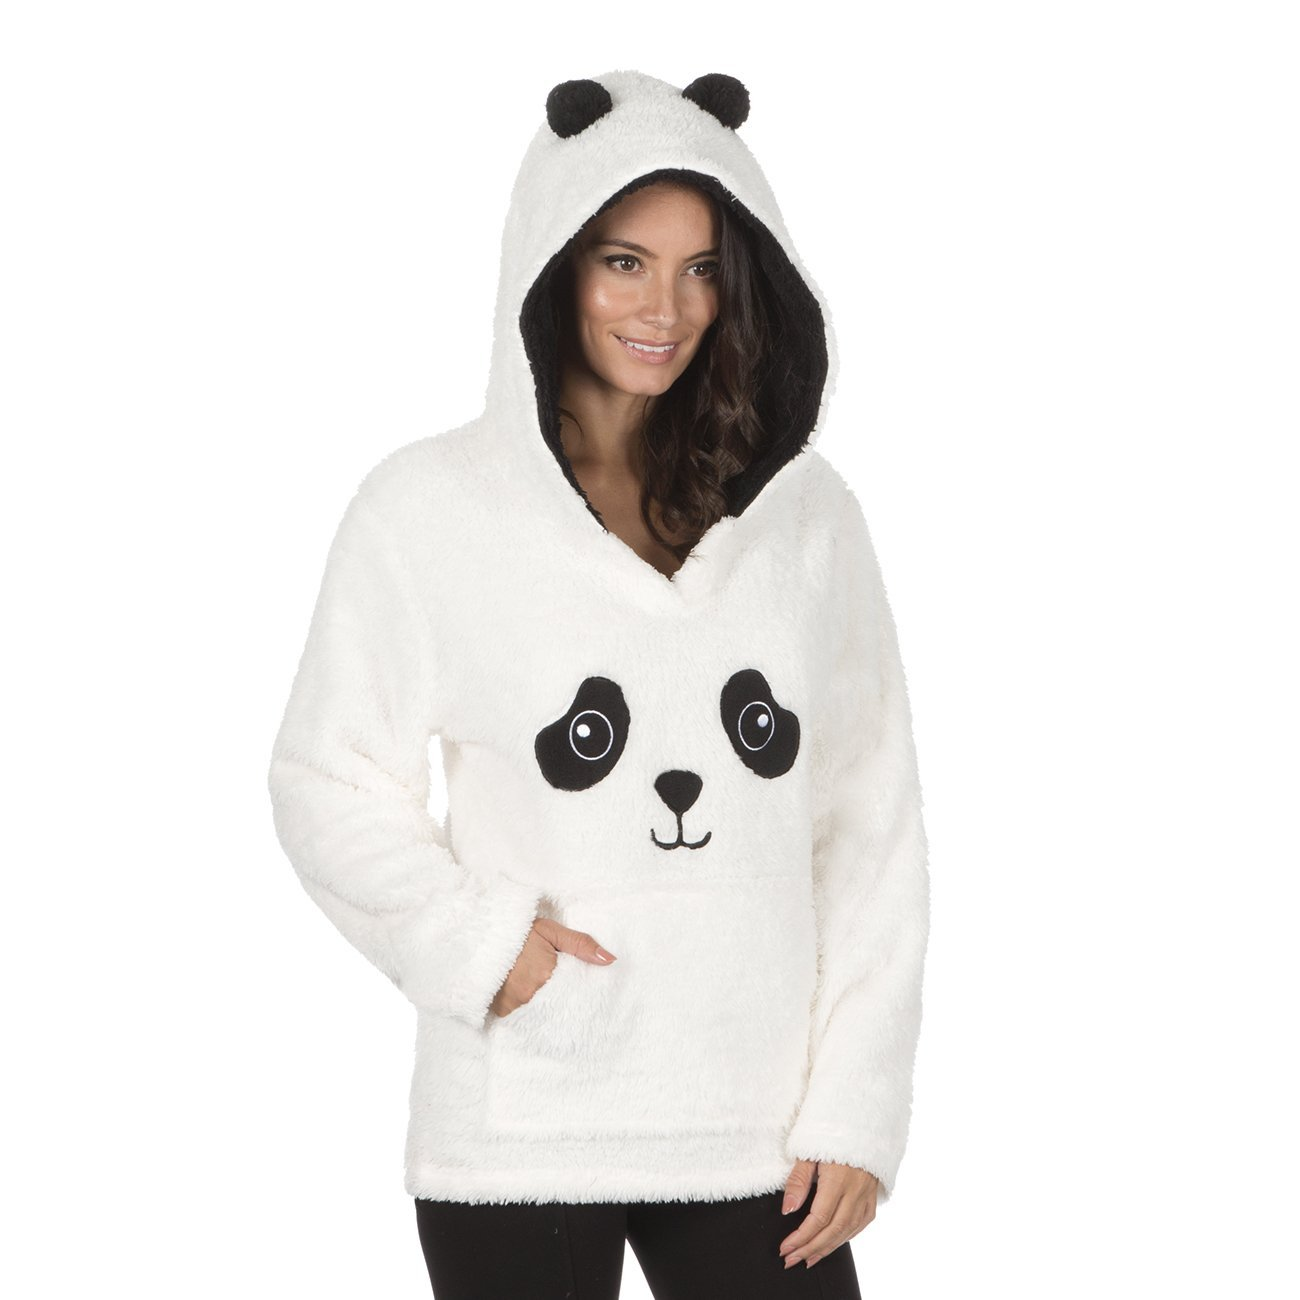 Snuggle Fleece Hooded Pajama Forever Dreaming Womens Novelty Animal Bed Jacked